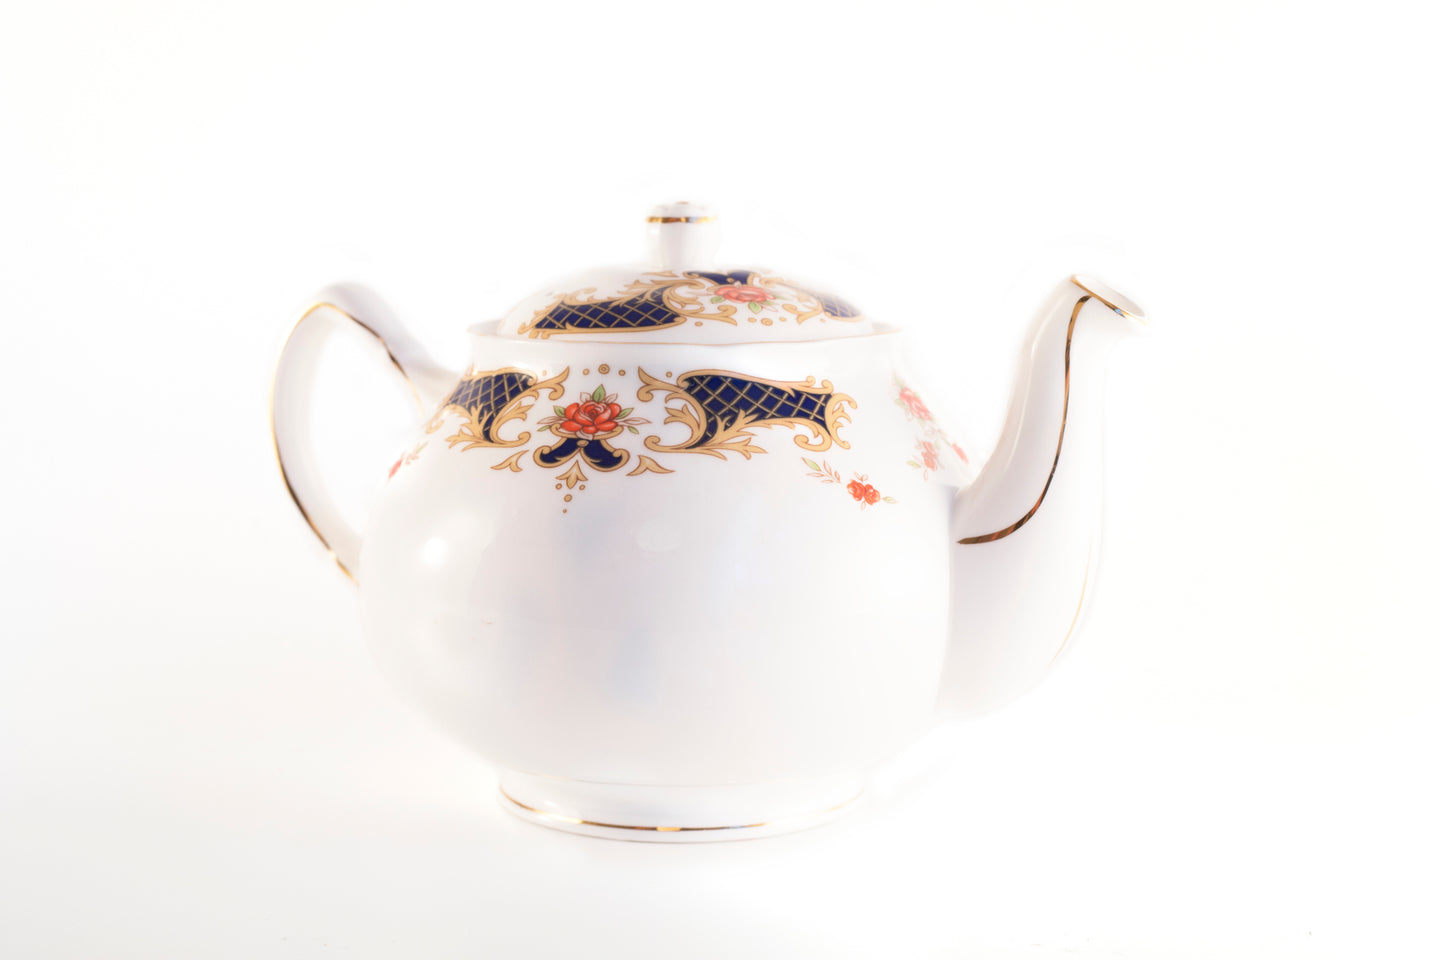 treats teservis teaset tea party sugar bowl sugar stockholm spoon special handpicked greasy spoon greasy gift idea gift english earl grey cup coffee china candy cafe bowl bone teapot westminster classic